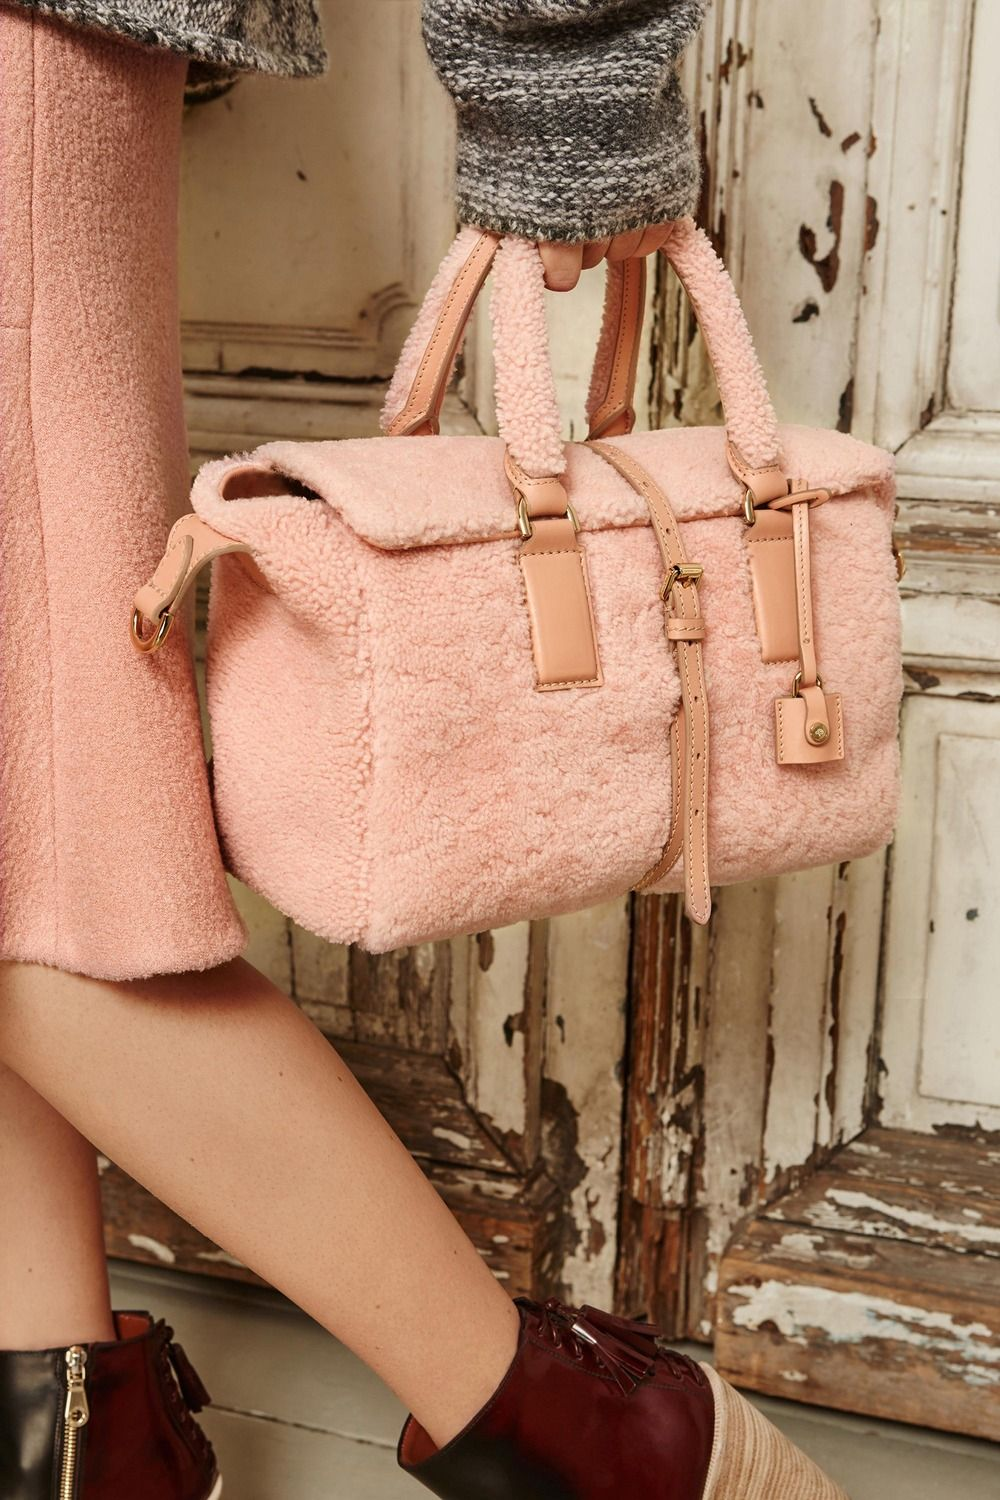 19f23a800921 reduced mulberry joel messenger crossbody bag. pristine 7f7ea 28857   wholesale and in the winner of bag wed most love to live in this structured  yet